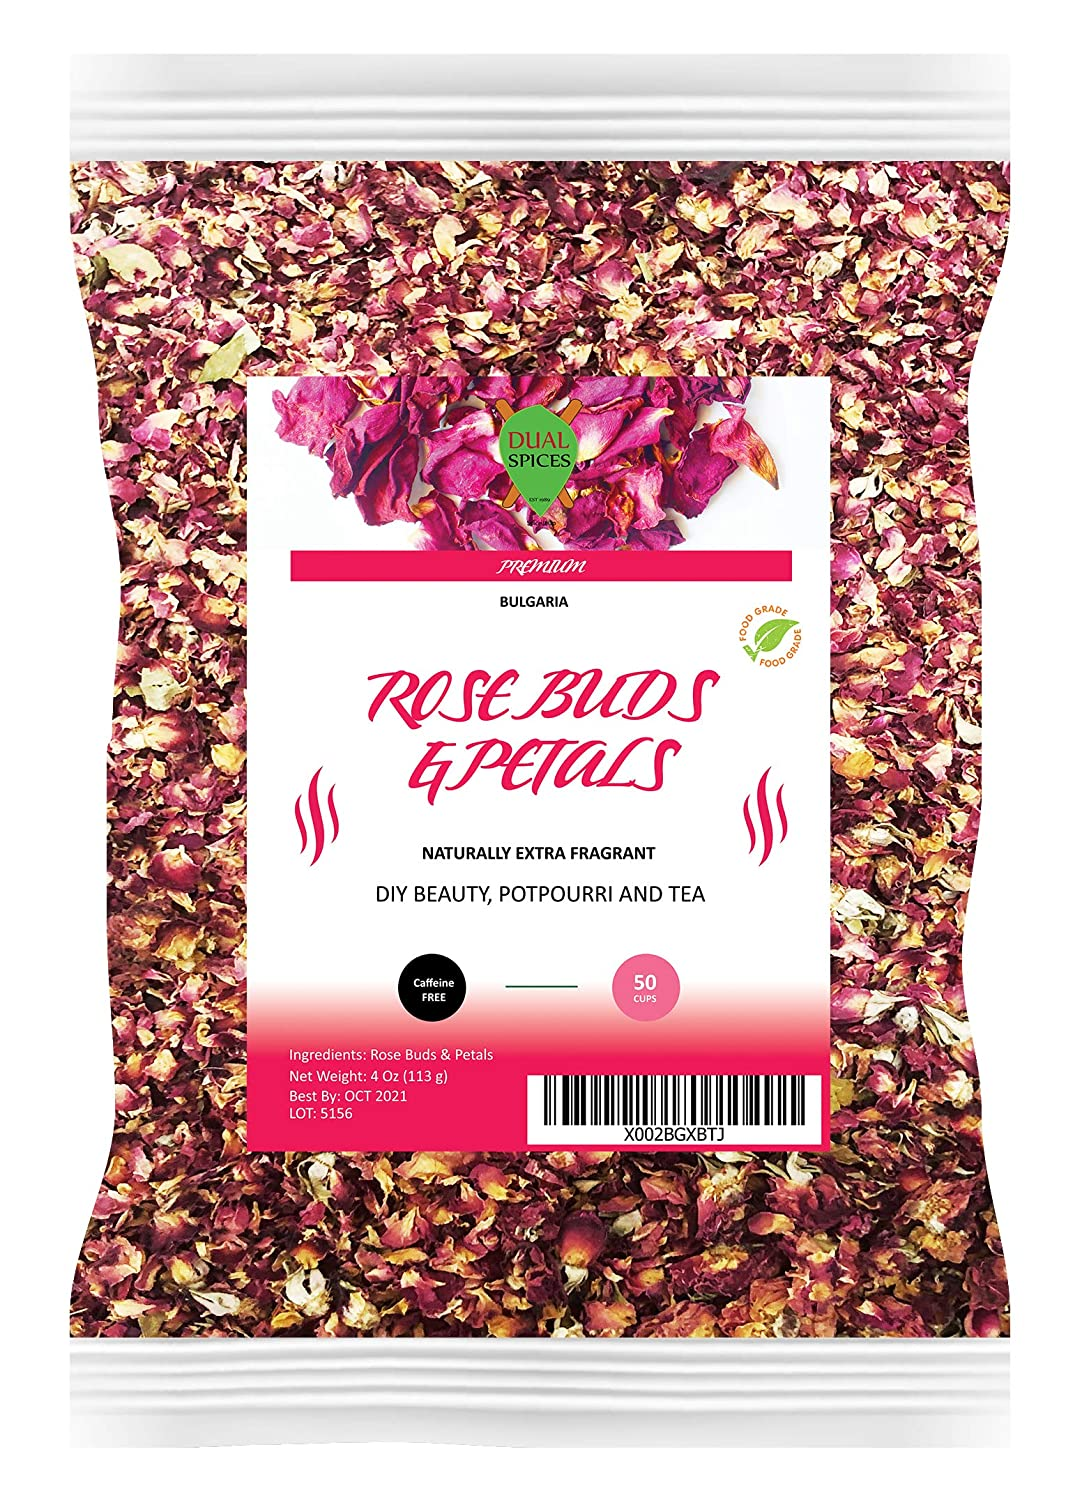 Dualspices Rose Buds & Petals Tea 4 Oz - Food Grade Edible Fragrant Natural Healthy Best for Tea, Baking, Making Rose Water, Crafting Freshest Directly from BULGARIA